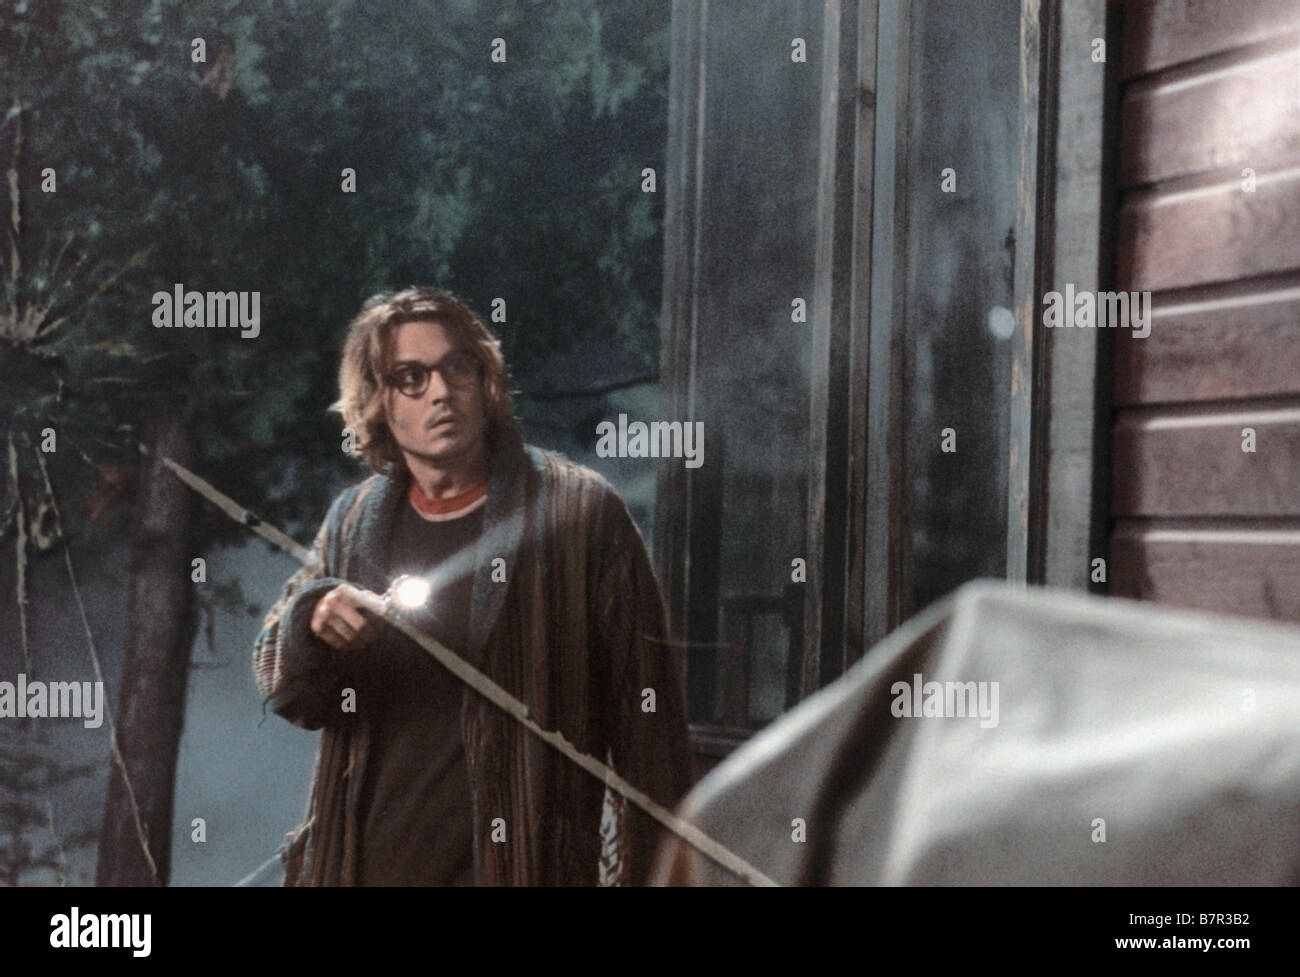 Fen tre secrete secret window ann e 2004 usa johnny depp for Fenetre secrete